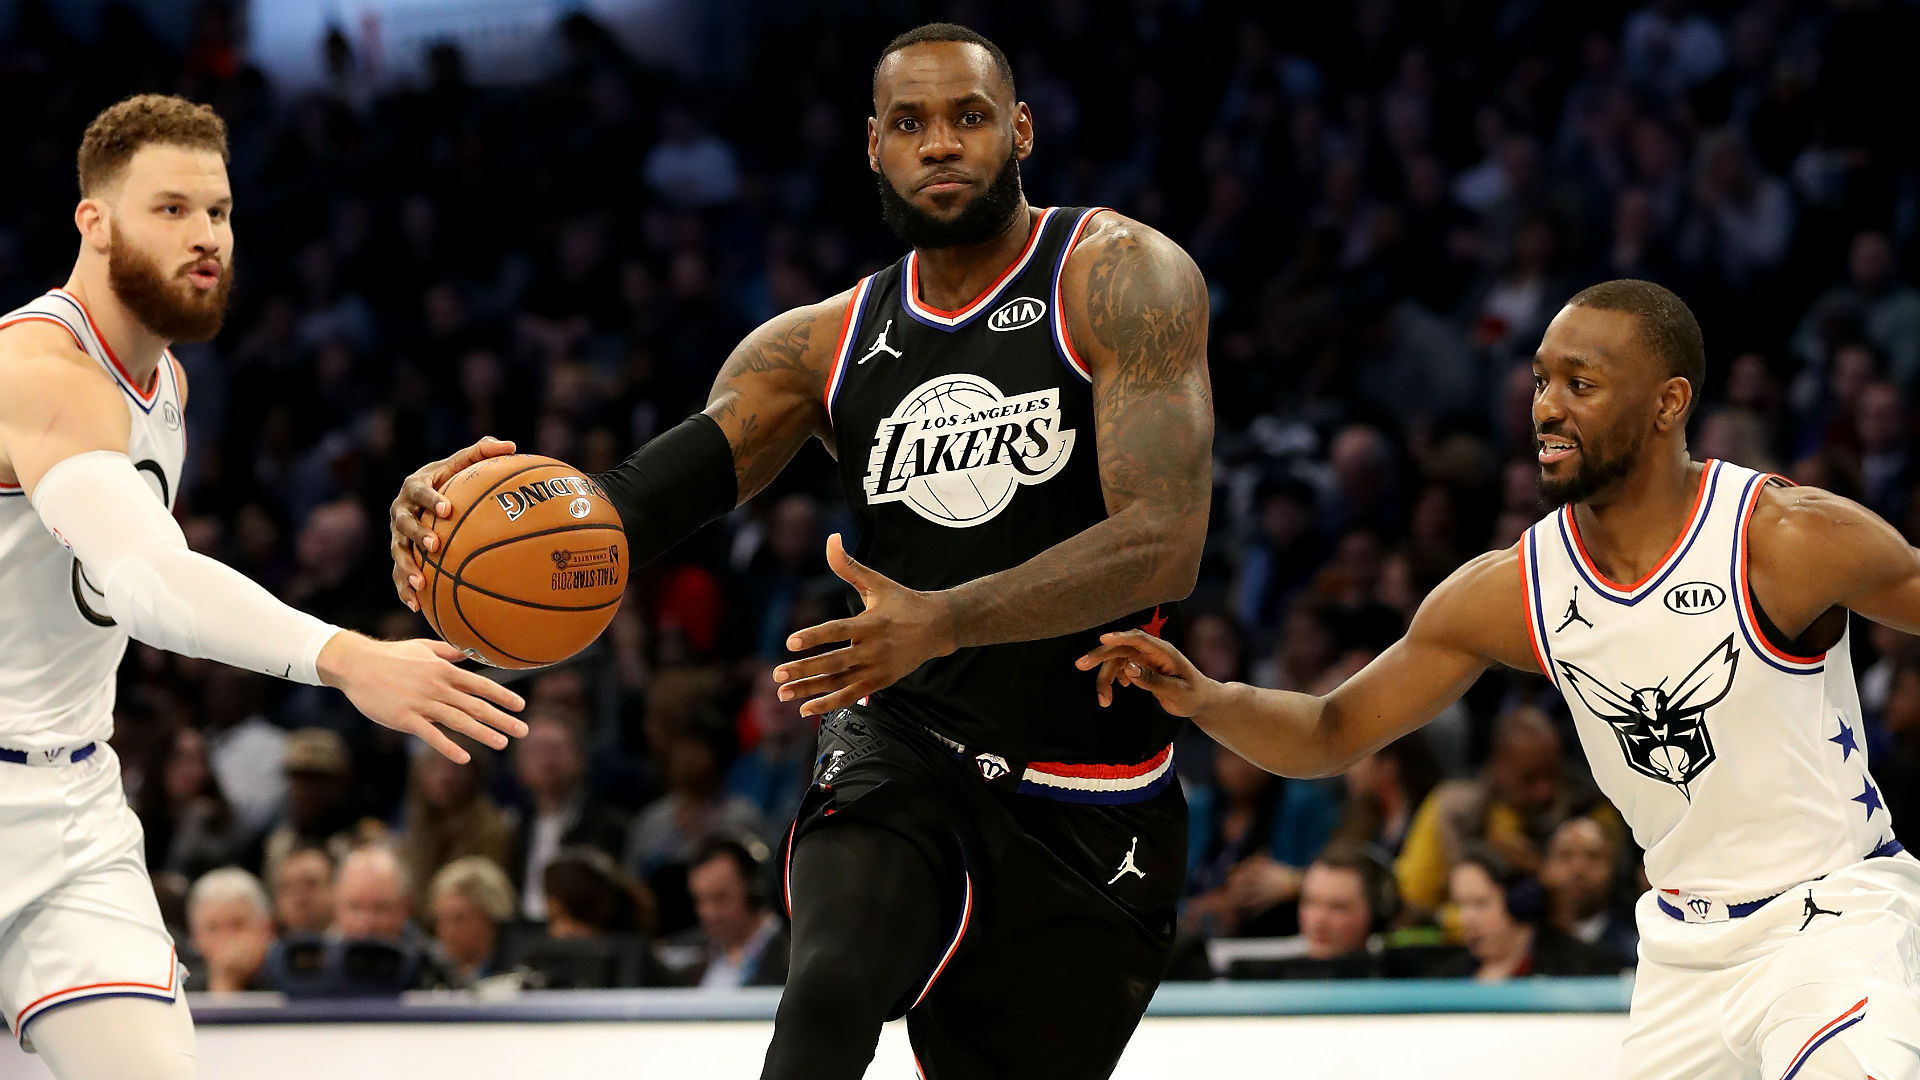 NBA All-Star Game 2019: Top 5 highlights from Team LeBron's victory over Team Giannis